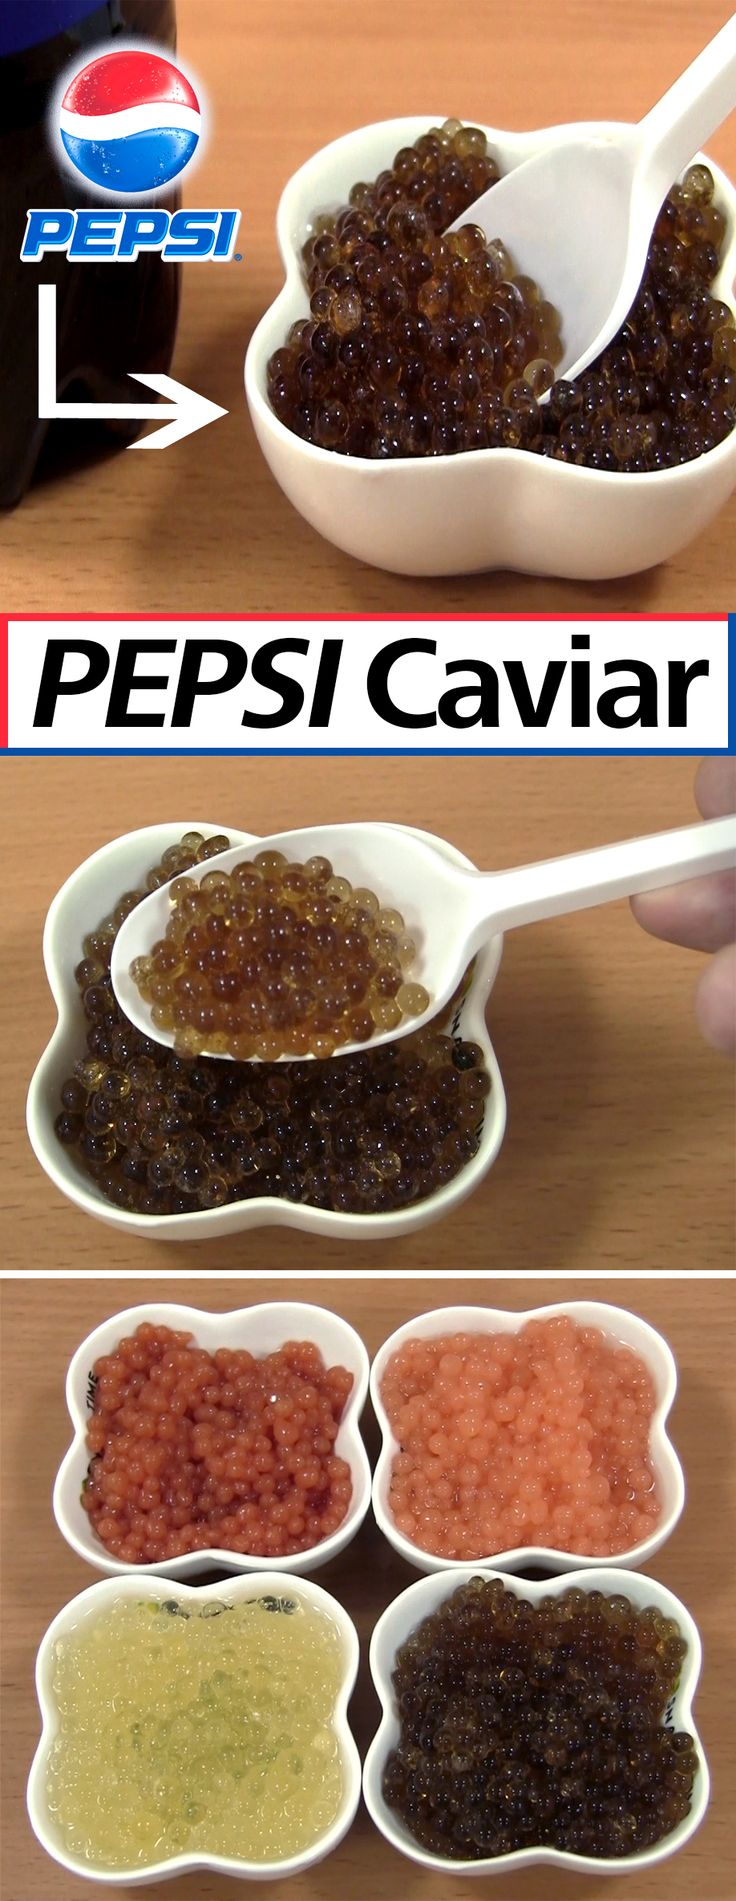 Learn how to transform a liquid into sphere that can be eaten with a spoon. Above you can see caviar made out of Pepsi, Tomato Juice, Apple Juice, and Carrot Juice.